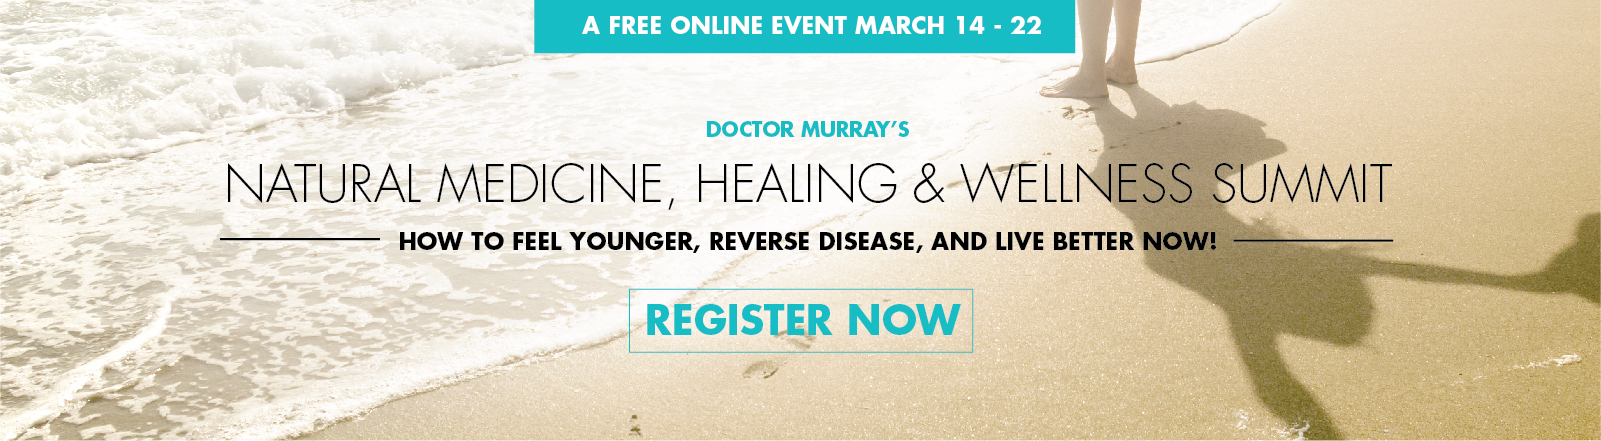 natural medicine summit